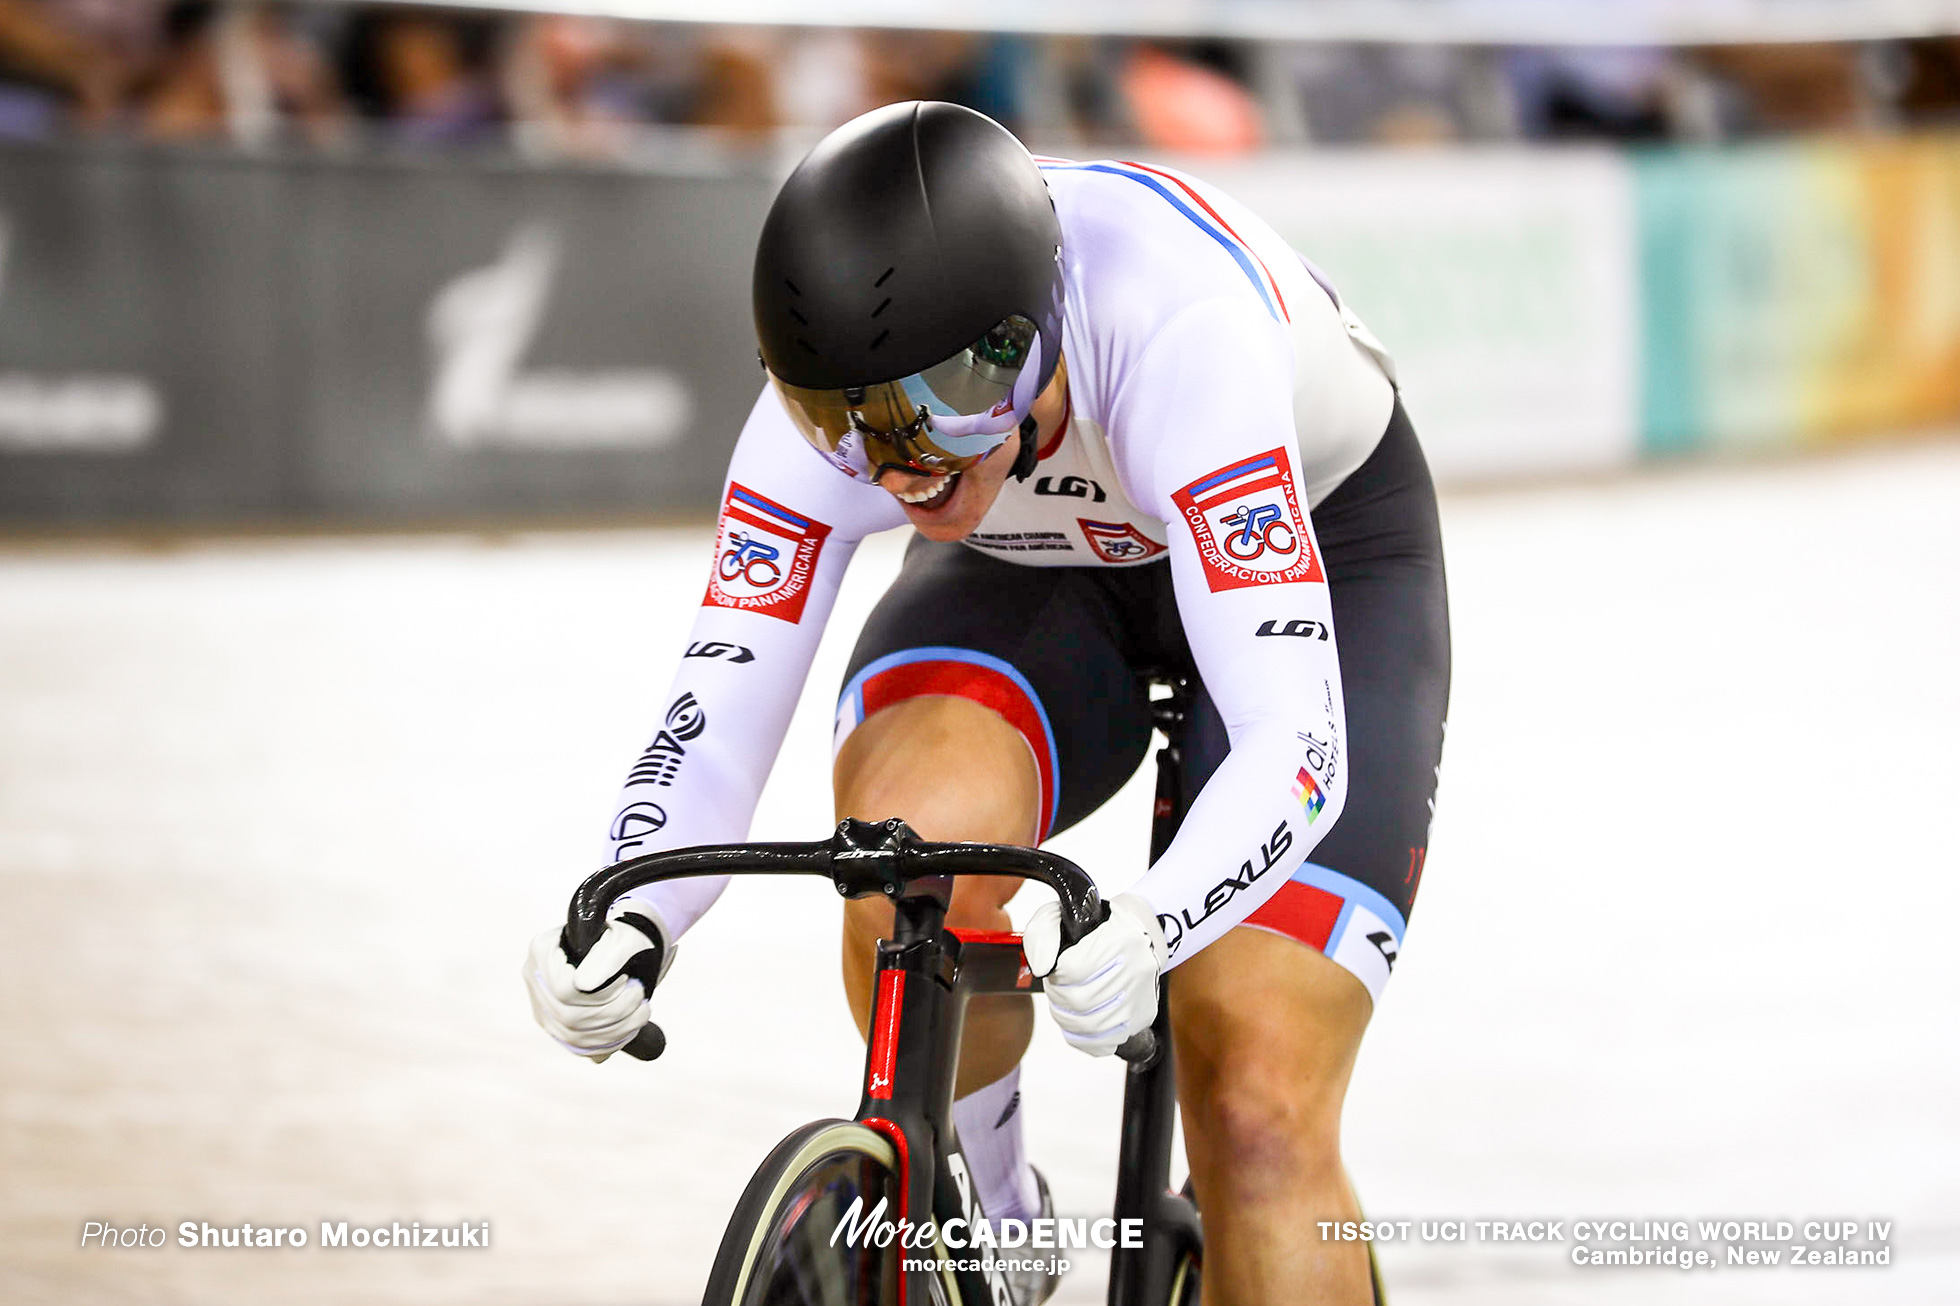 Qualifying / Women's Sprint / TISSOT UCI TRACK CYCLING WORLD CUP IV, Cambridge, New Zealand